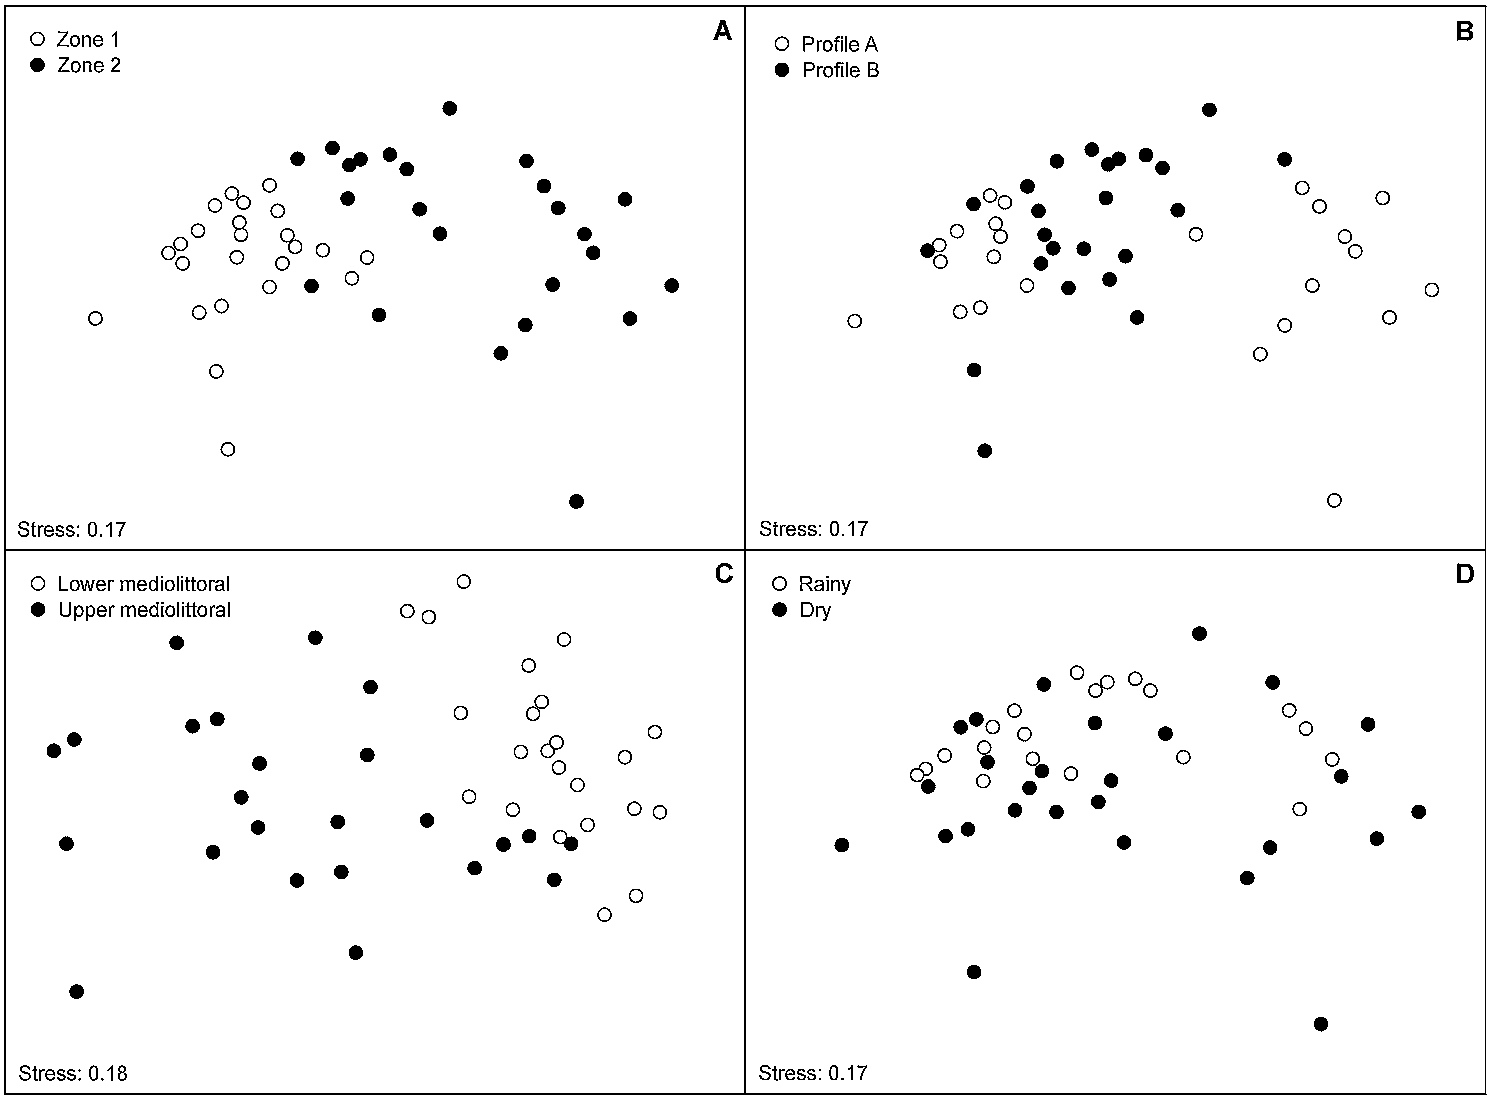 Composition and spatio-temporal variation in the density of